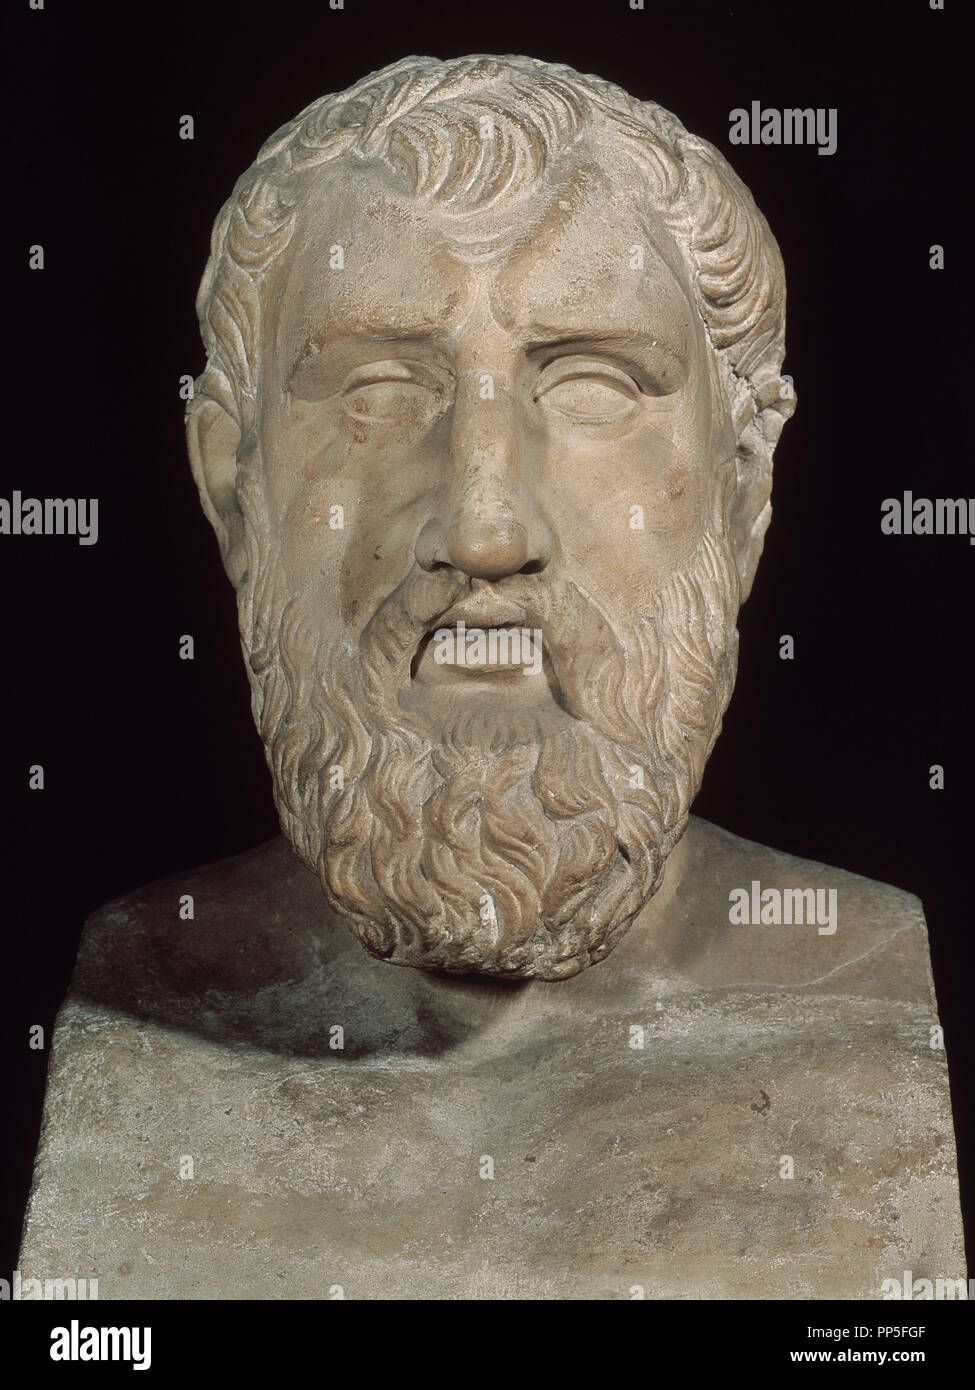 Bust of Zeno of Citium (335-264 BC), Greek philosopher and founder of stoicism.. Rome, museum of the Capitole. Location: MUSEO CAPITOLINO. Rome. ITALIA. - Stock Image